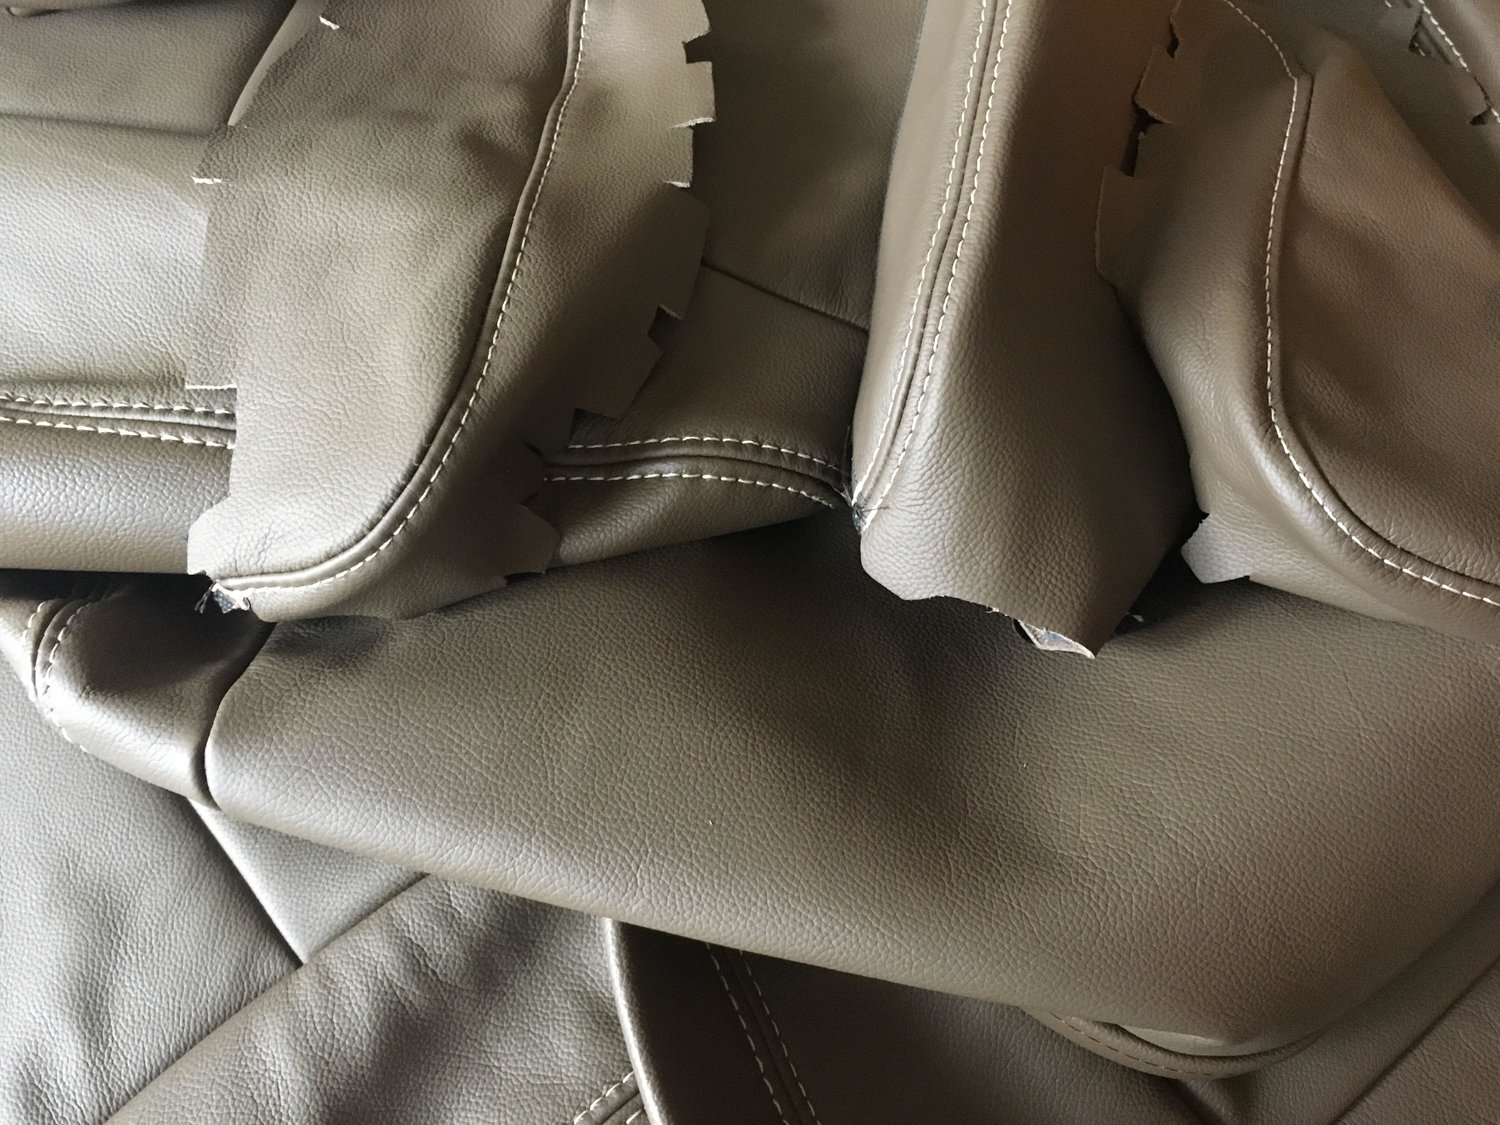 Lexus GX470 Leather Upholstery